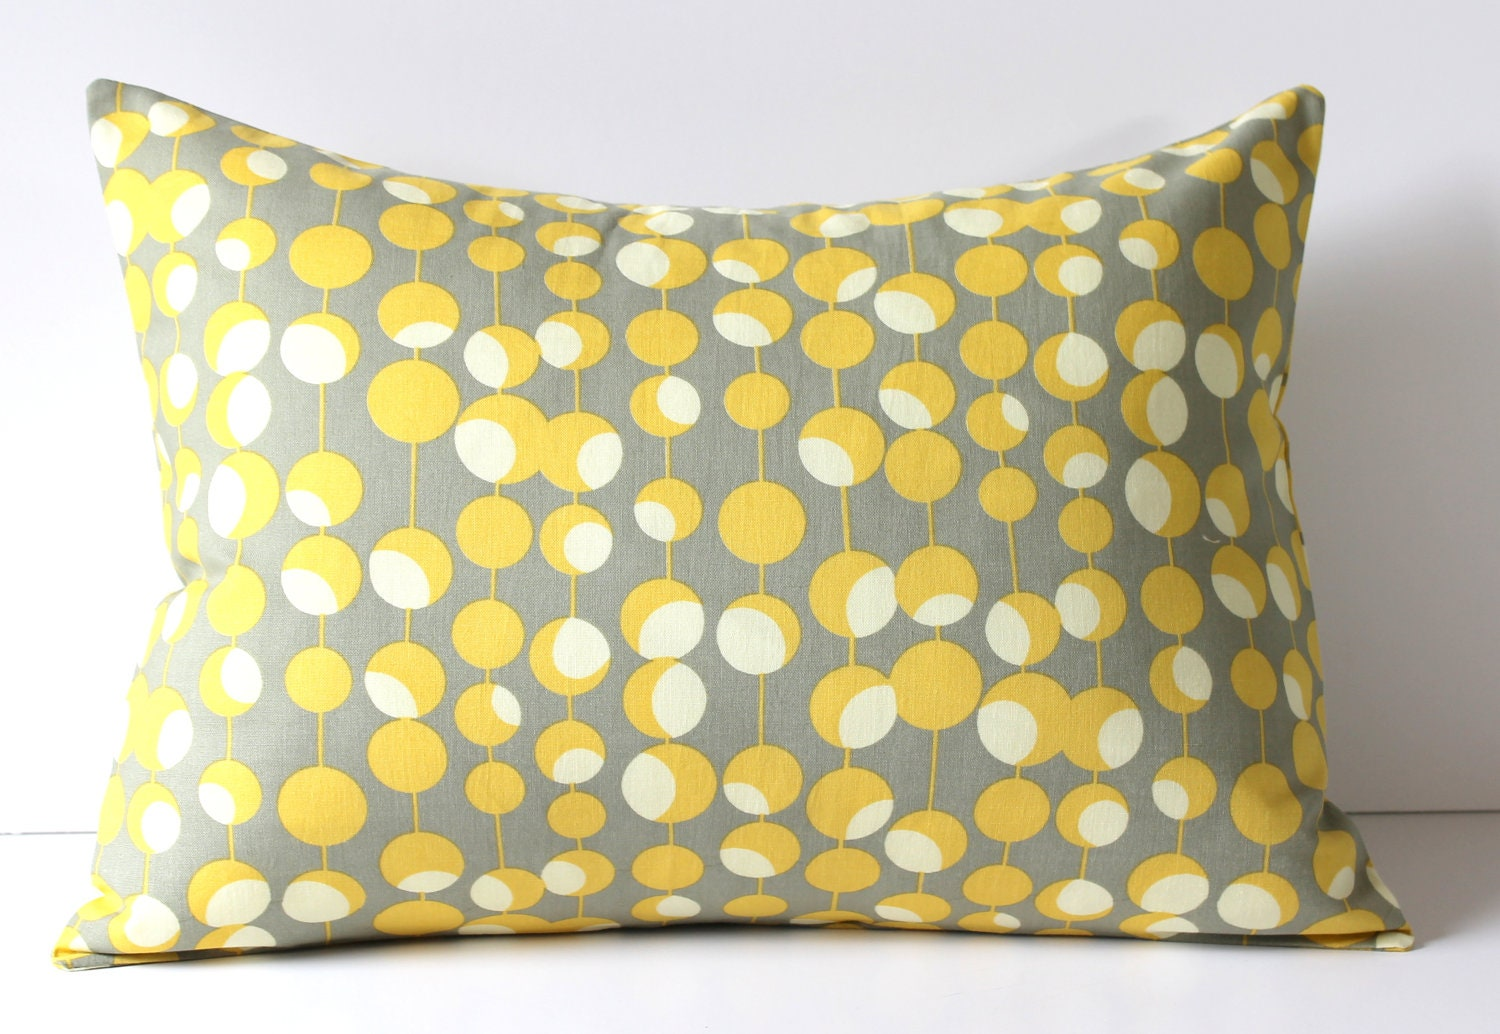 Decorative Pillow Cover Gray Amp Mustard Yellow Martini Dots